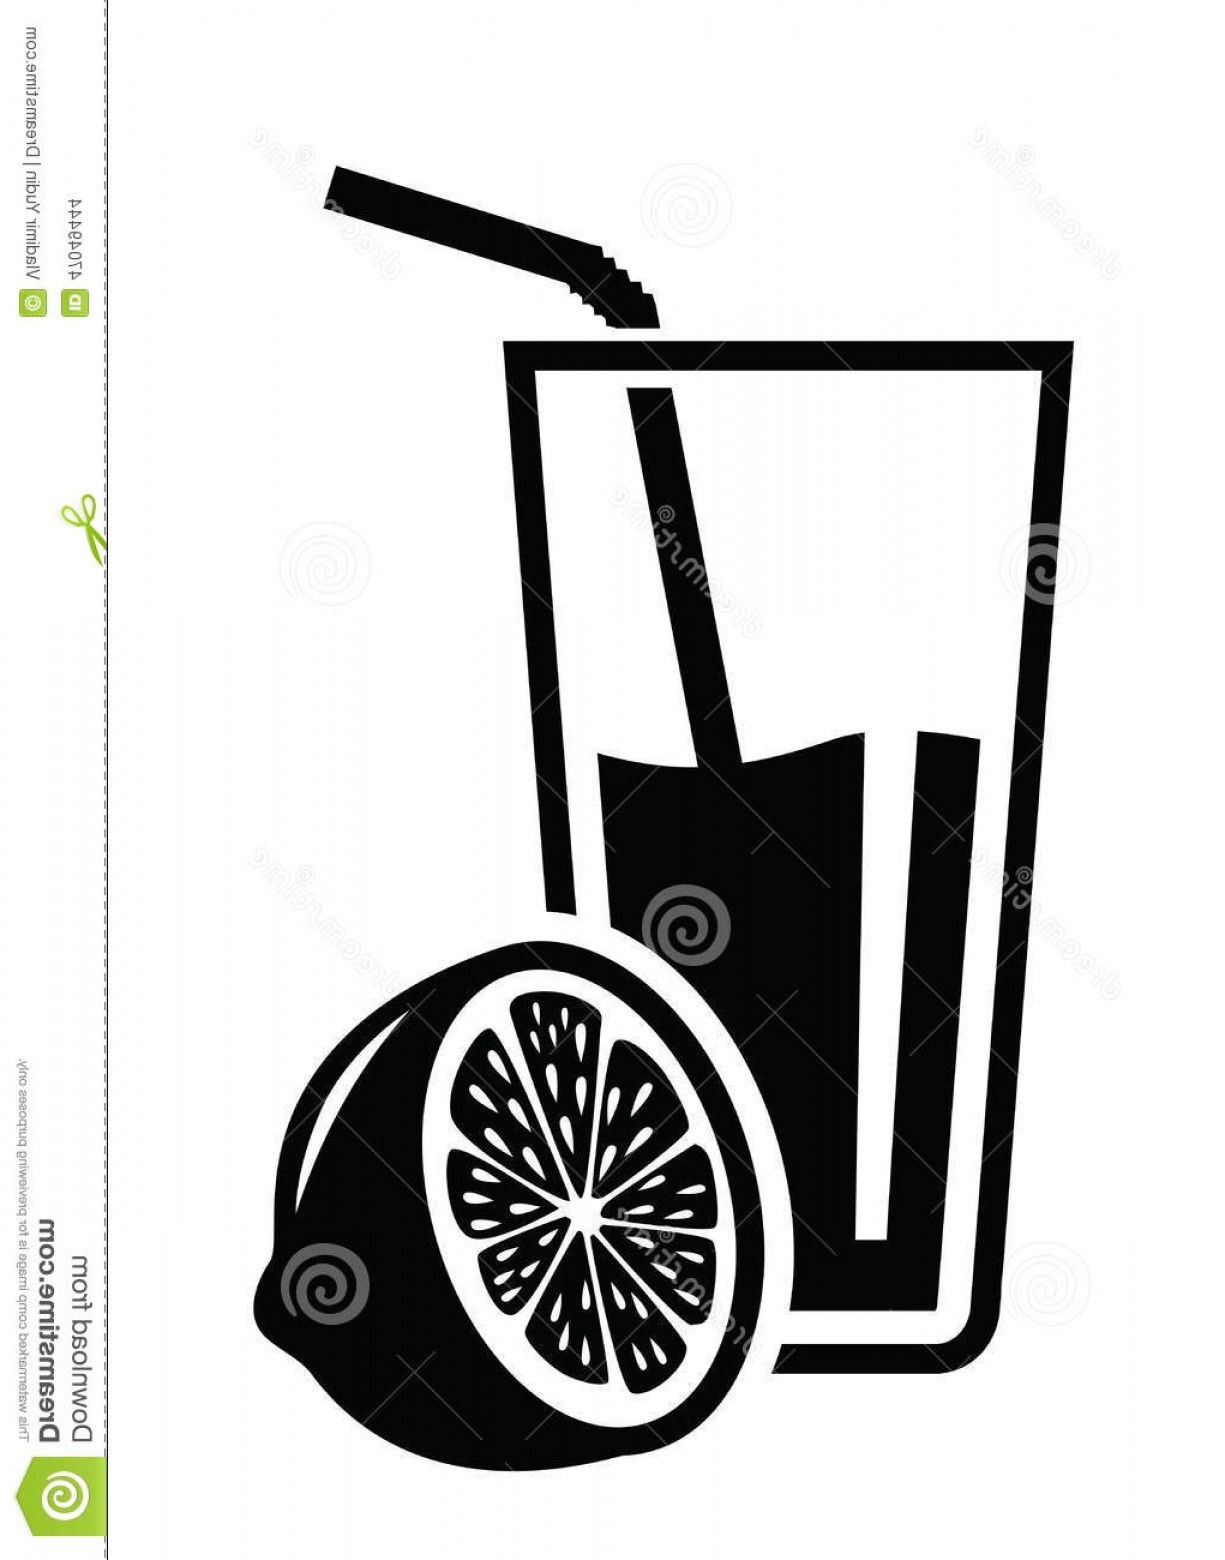 Juice Vector Black: Stock Illustration Juice Icon Vector Black White Background Image